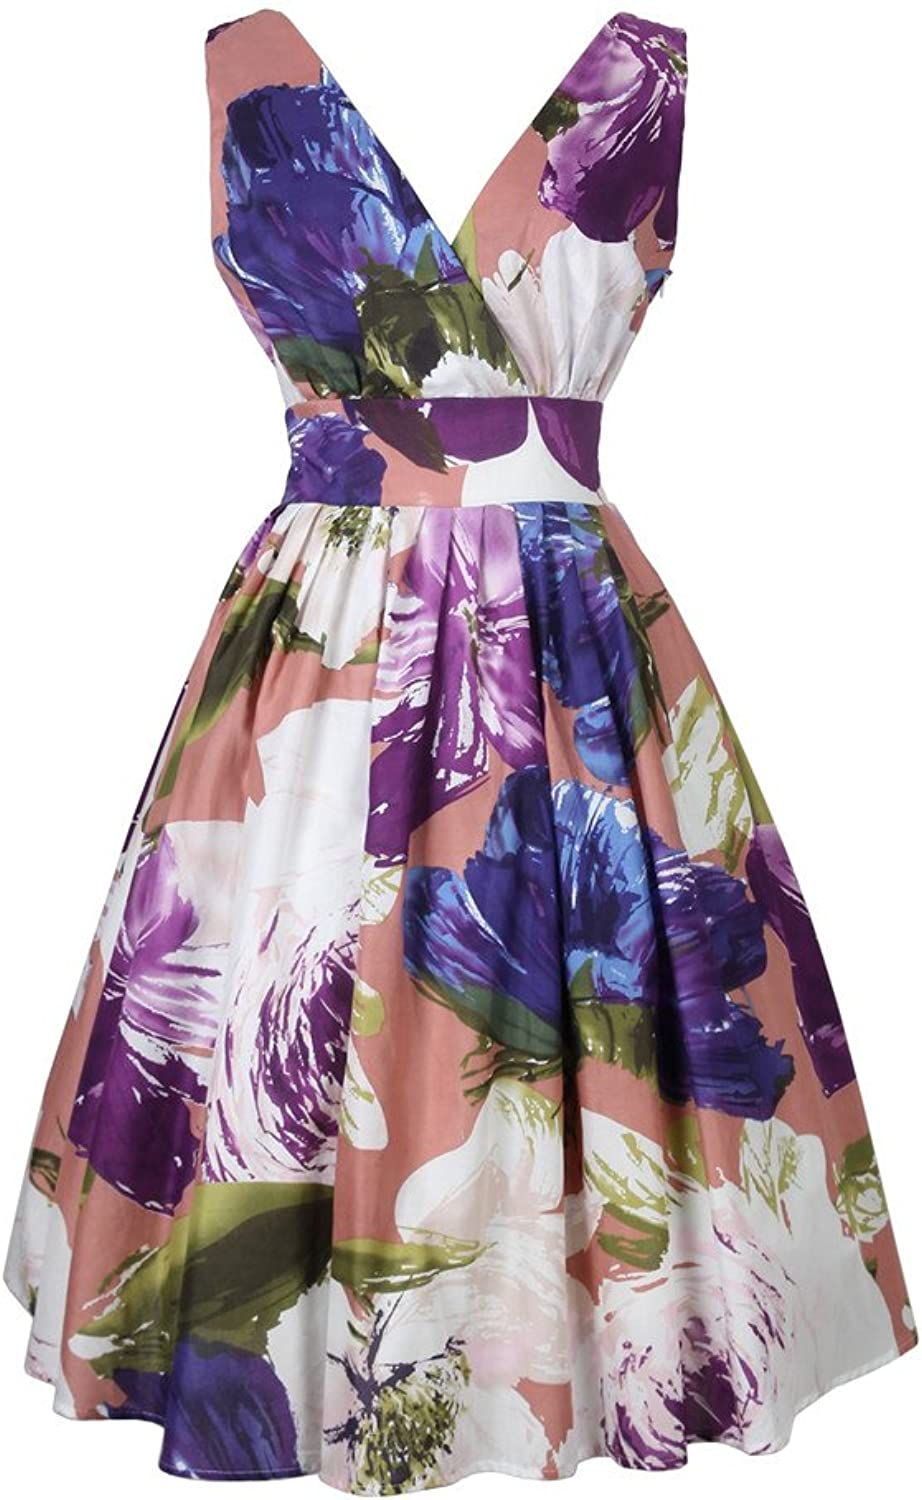 QUEENOFHOLLOW 1950 Vintage Thin cotton vneck White with purple flower women's dress